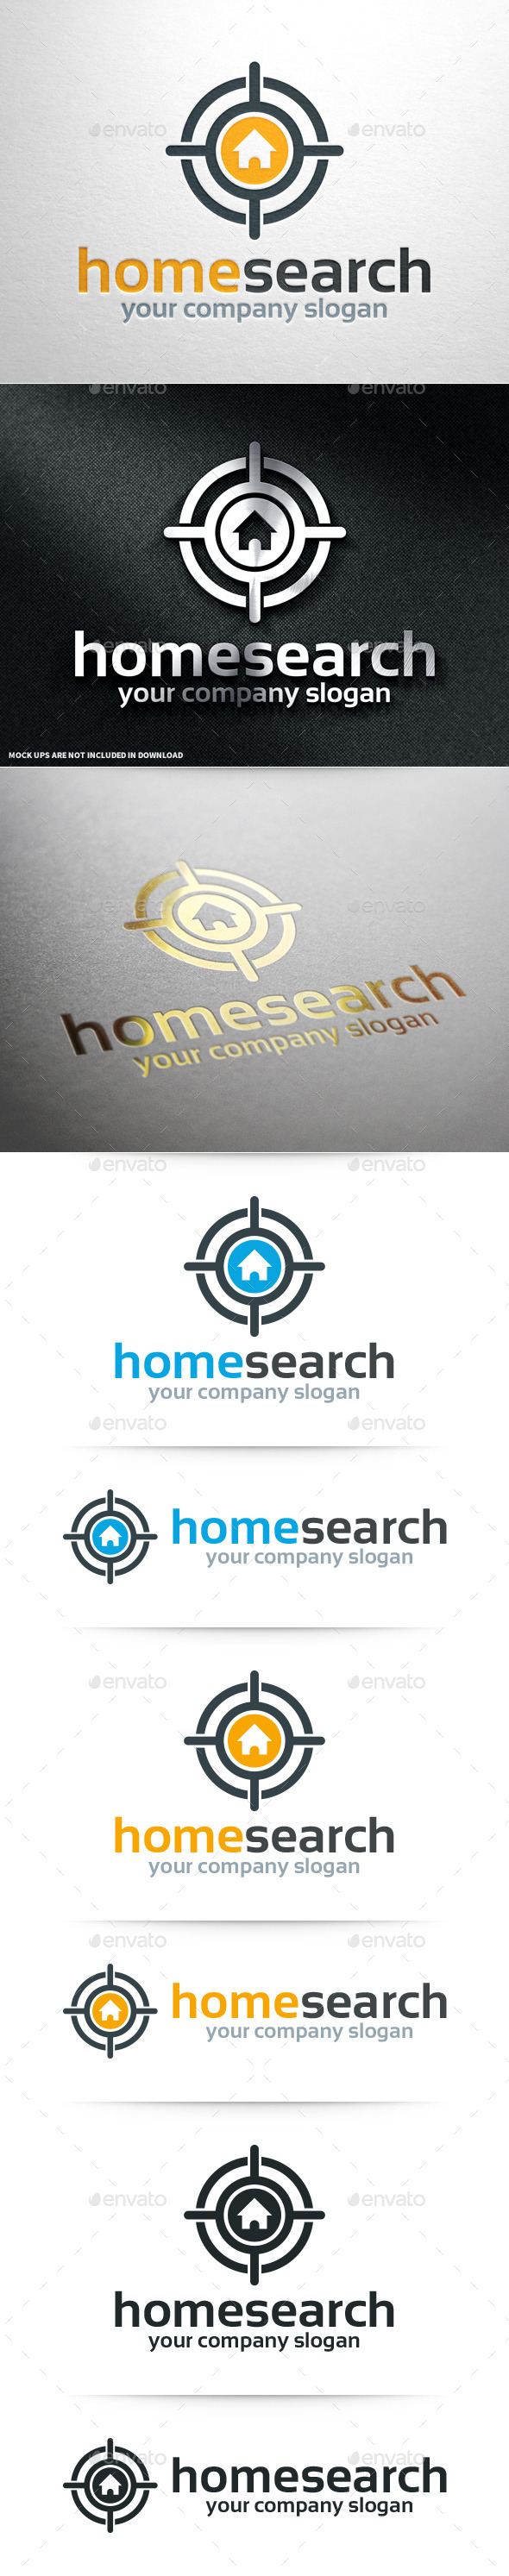 GraphicRiver Home Search Logo Template 10703331